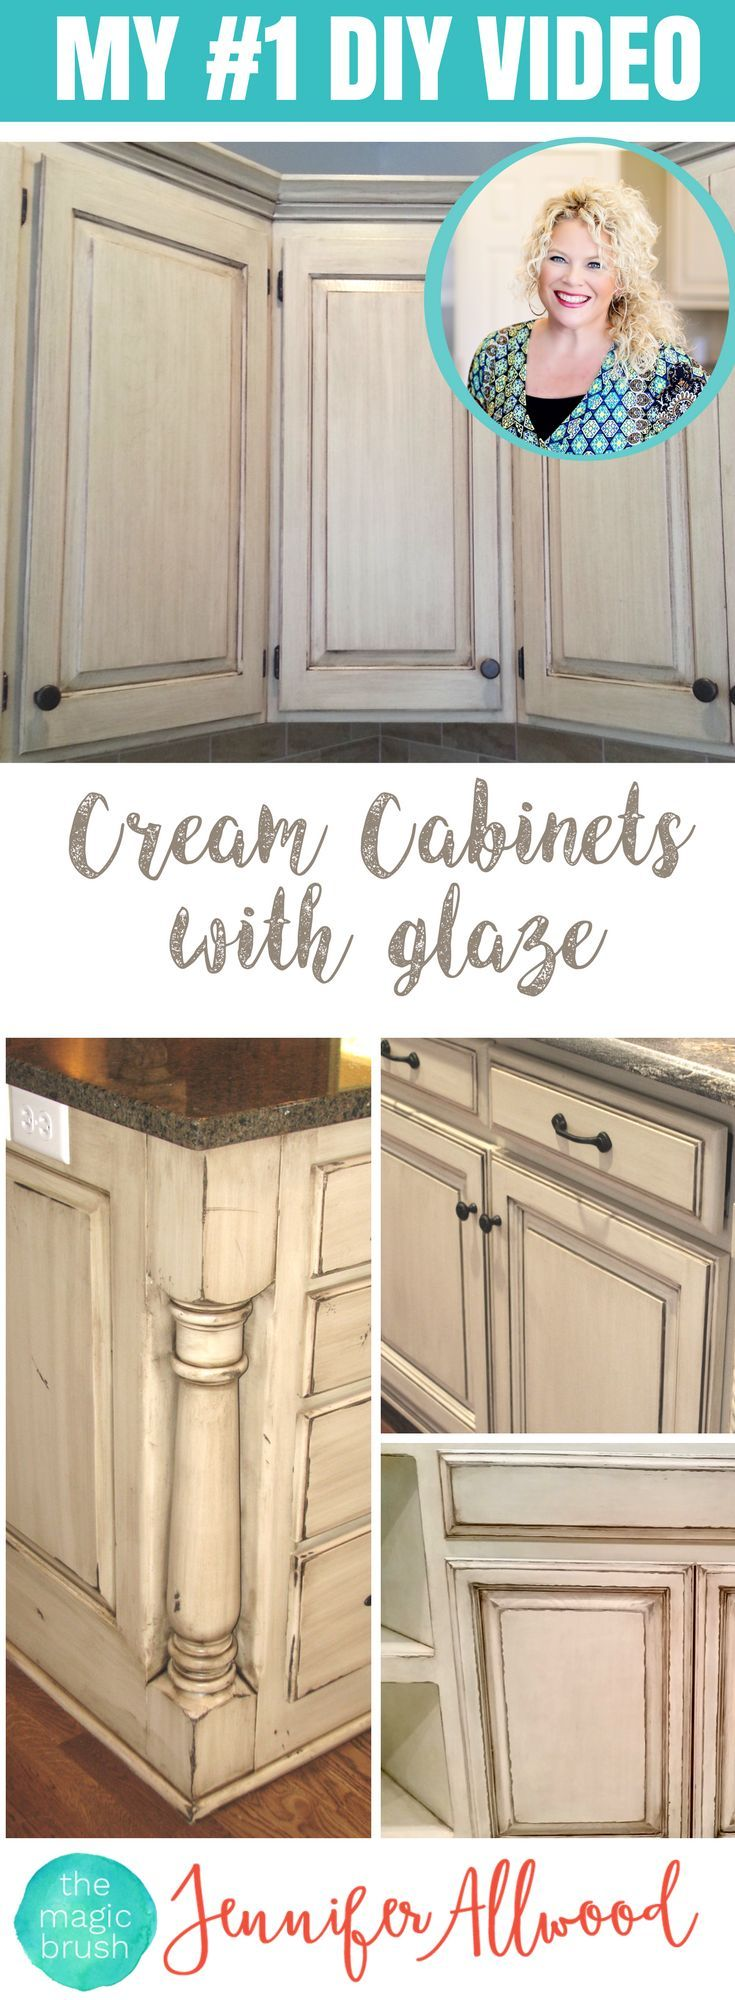 Info's : How to paint Cream Cabinets with glaze. This is my #1 selling DIY Video for updating your kitchen with painted cabinets. It's easy and goes with several kitchen styles - farmhouse kitchens, shabby chic kitchens and more. Kitchen Cabinet Makeovers are inexpensive and give a huge impact.